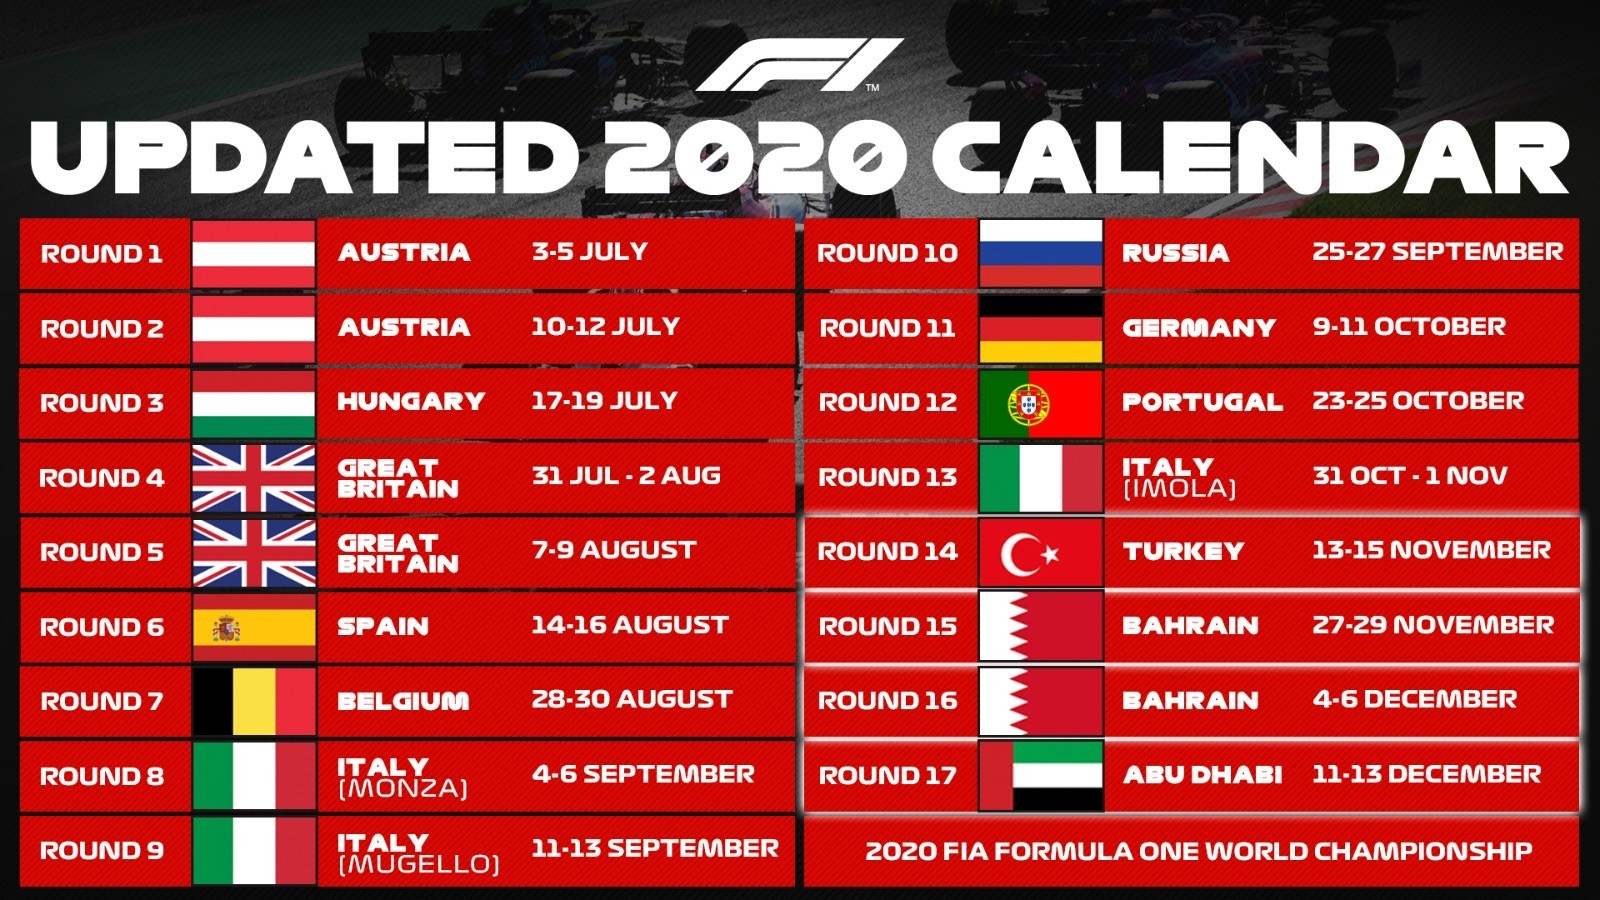 2020 F1 Calendar expands to 17 races